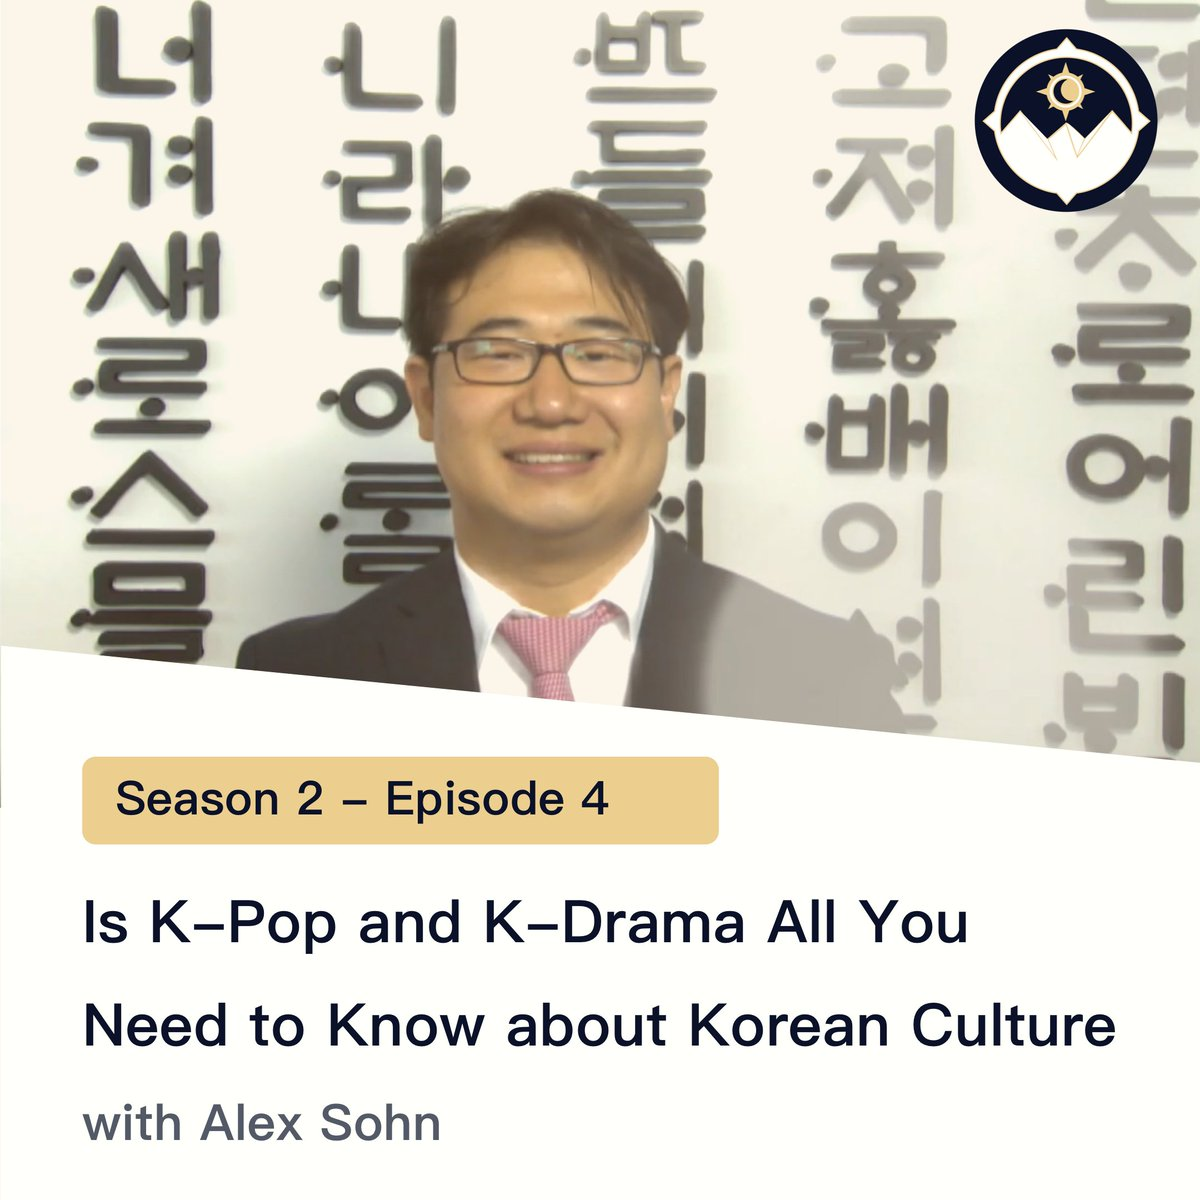 K-Pop and K-Drama fans!  Want to be immersed in the Korean culture?  Then tune in below: https://buff.ly/2Ko8u3v  #southkorea #seoul_korea #travelkorea #koreandrama #이종석 #koreanactress #koreanmodel #iseoulu #kdramas #koreandramas #kactor #hallyu #sbsdrama #seoulsecret #ig_koreapic.twitter.com/oFBuivAlCT